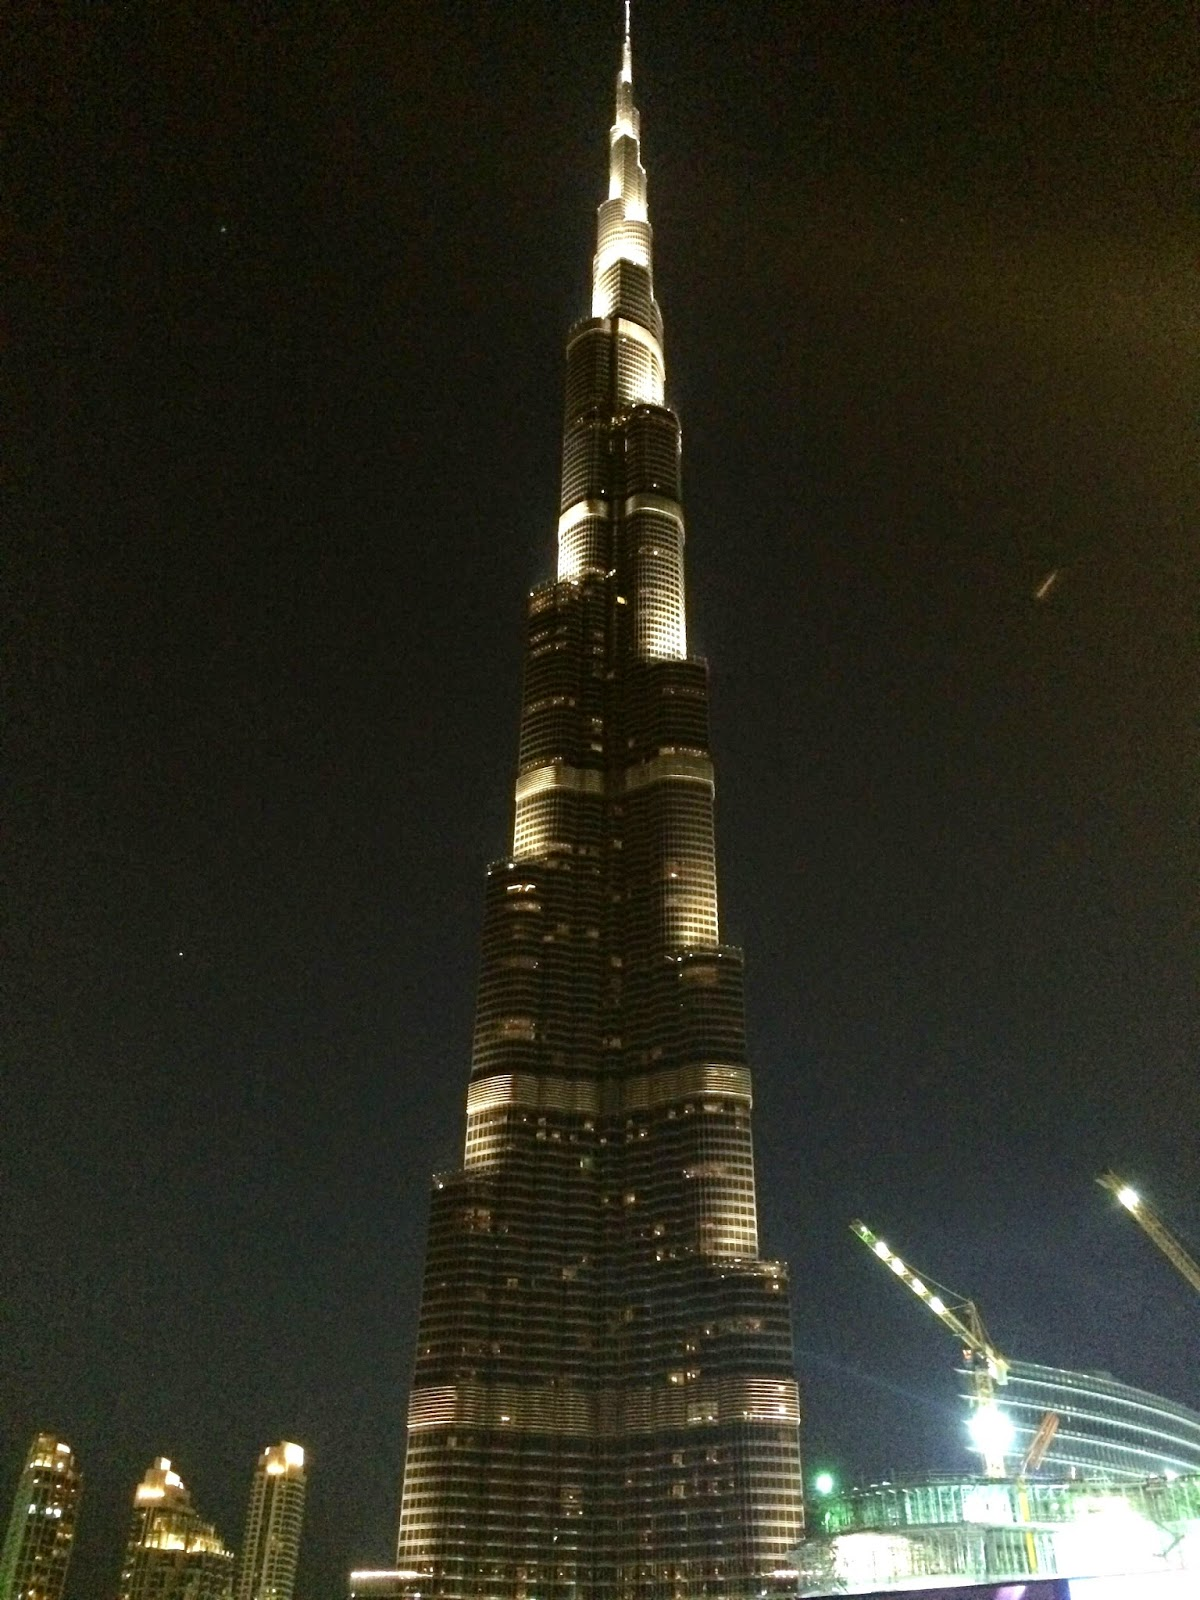 Burj Khalifa - It is the tallest building in the world at a half mile high.